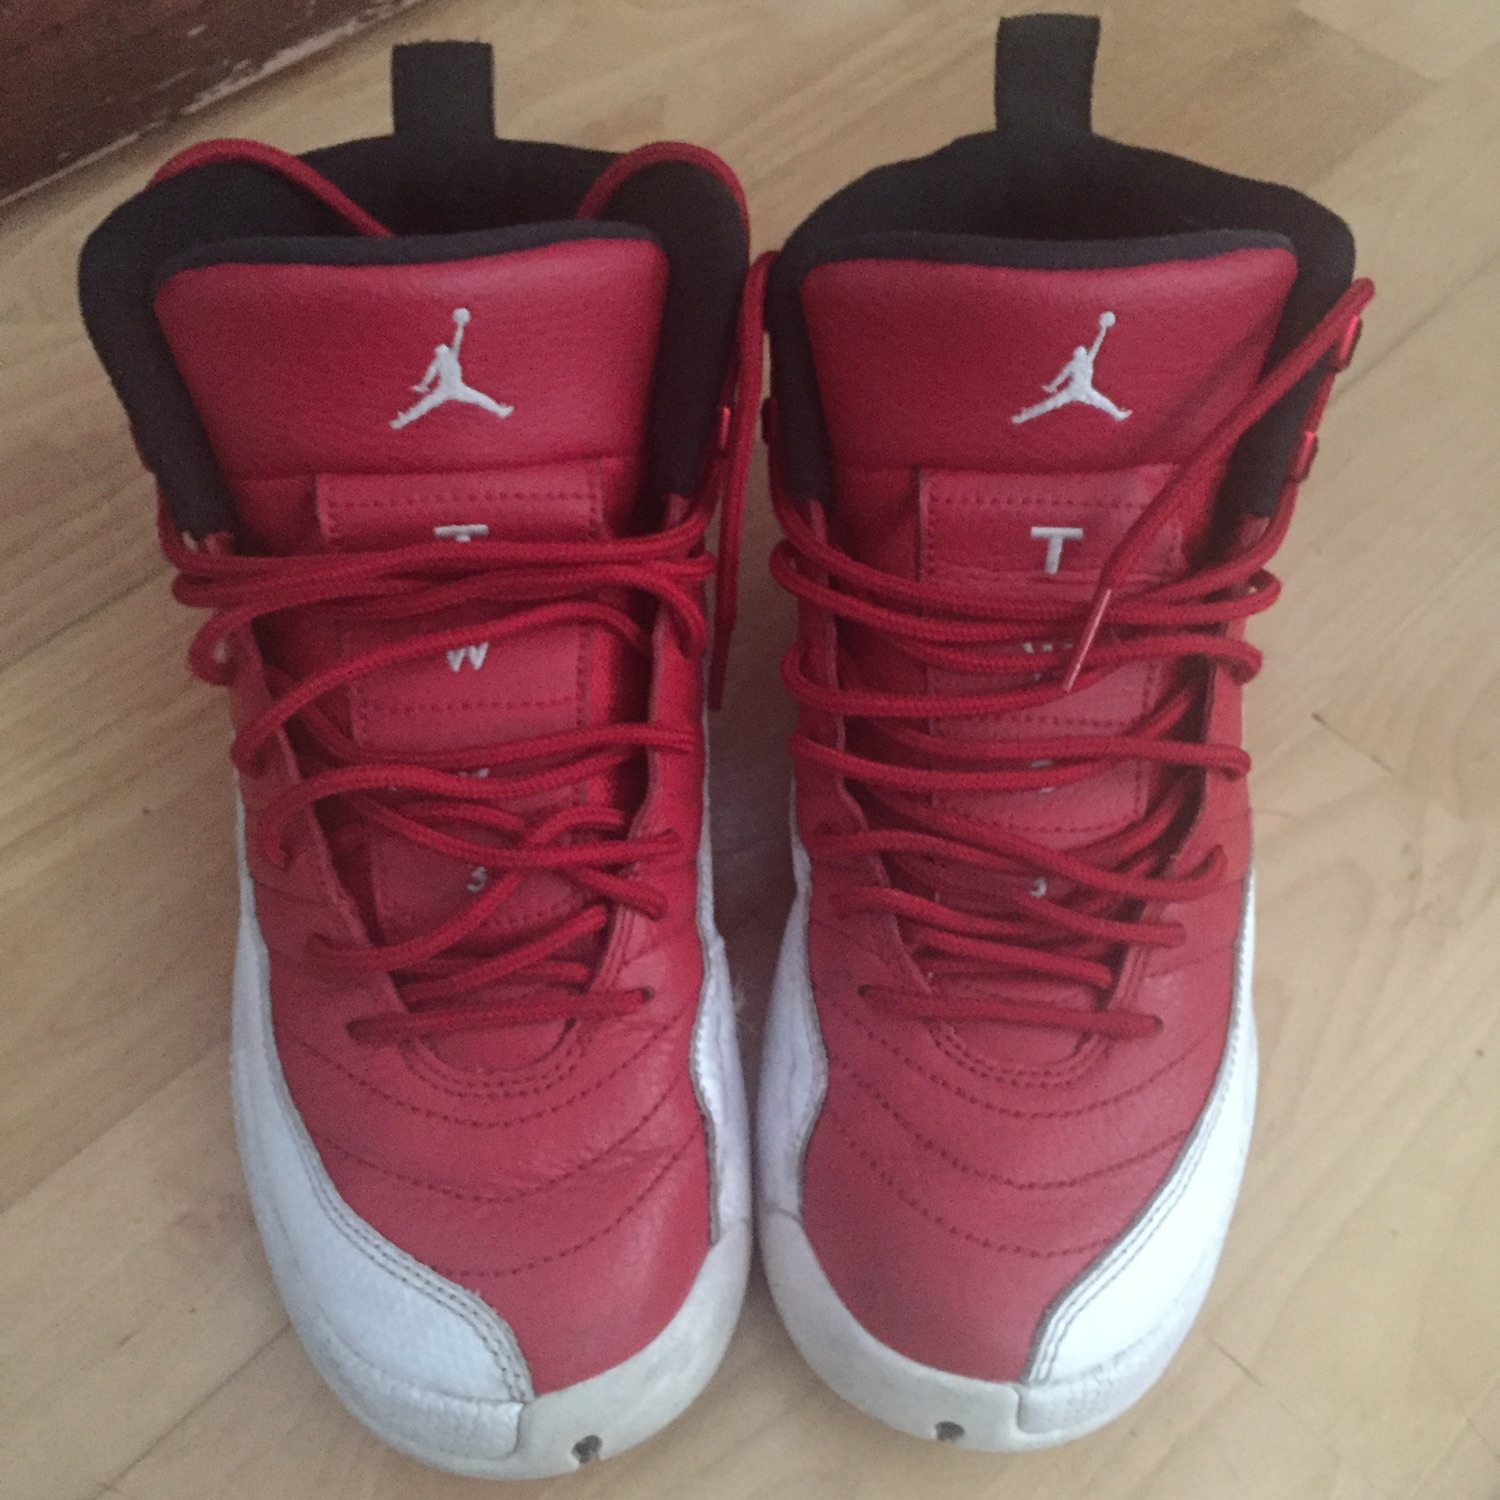 hot sale online e7ac6 f1a66 Jordan Retro 12 Gym Red Offer Your Price Or Trade